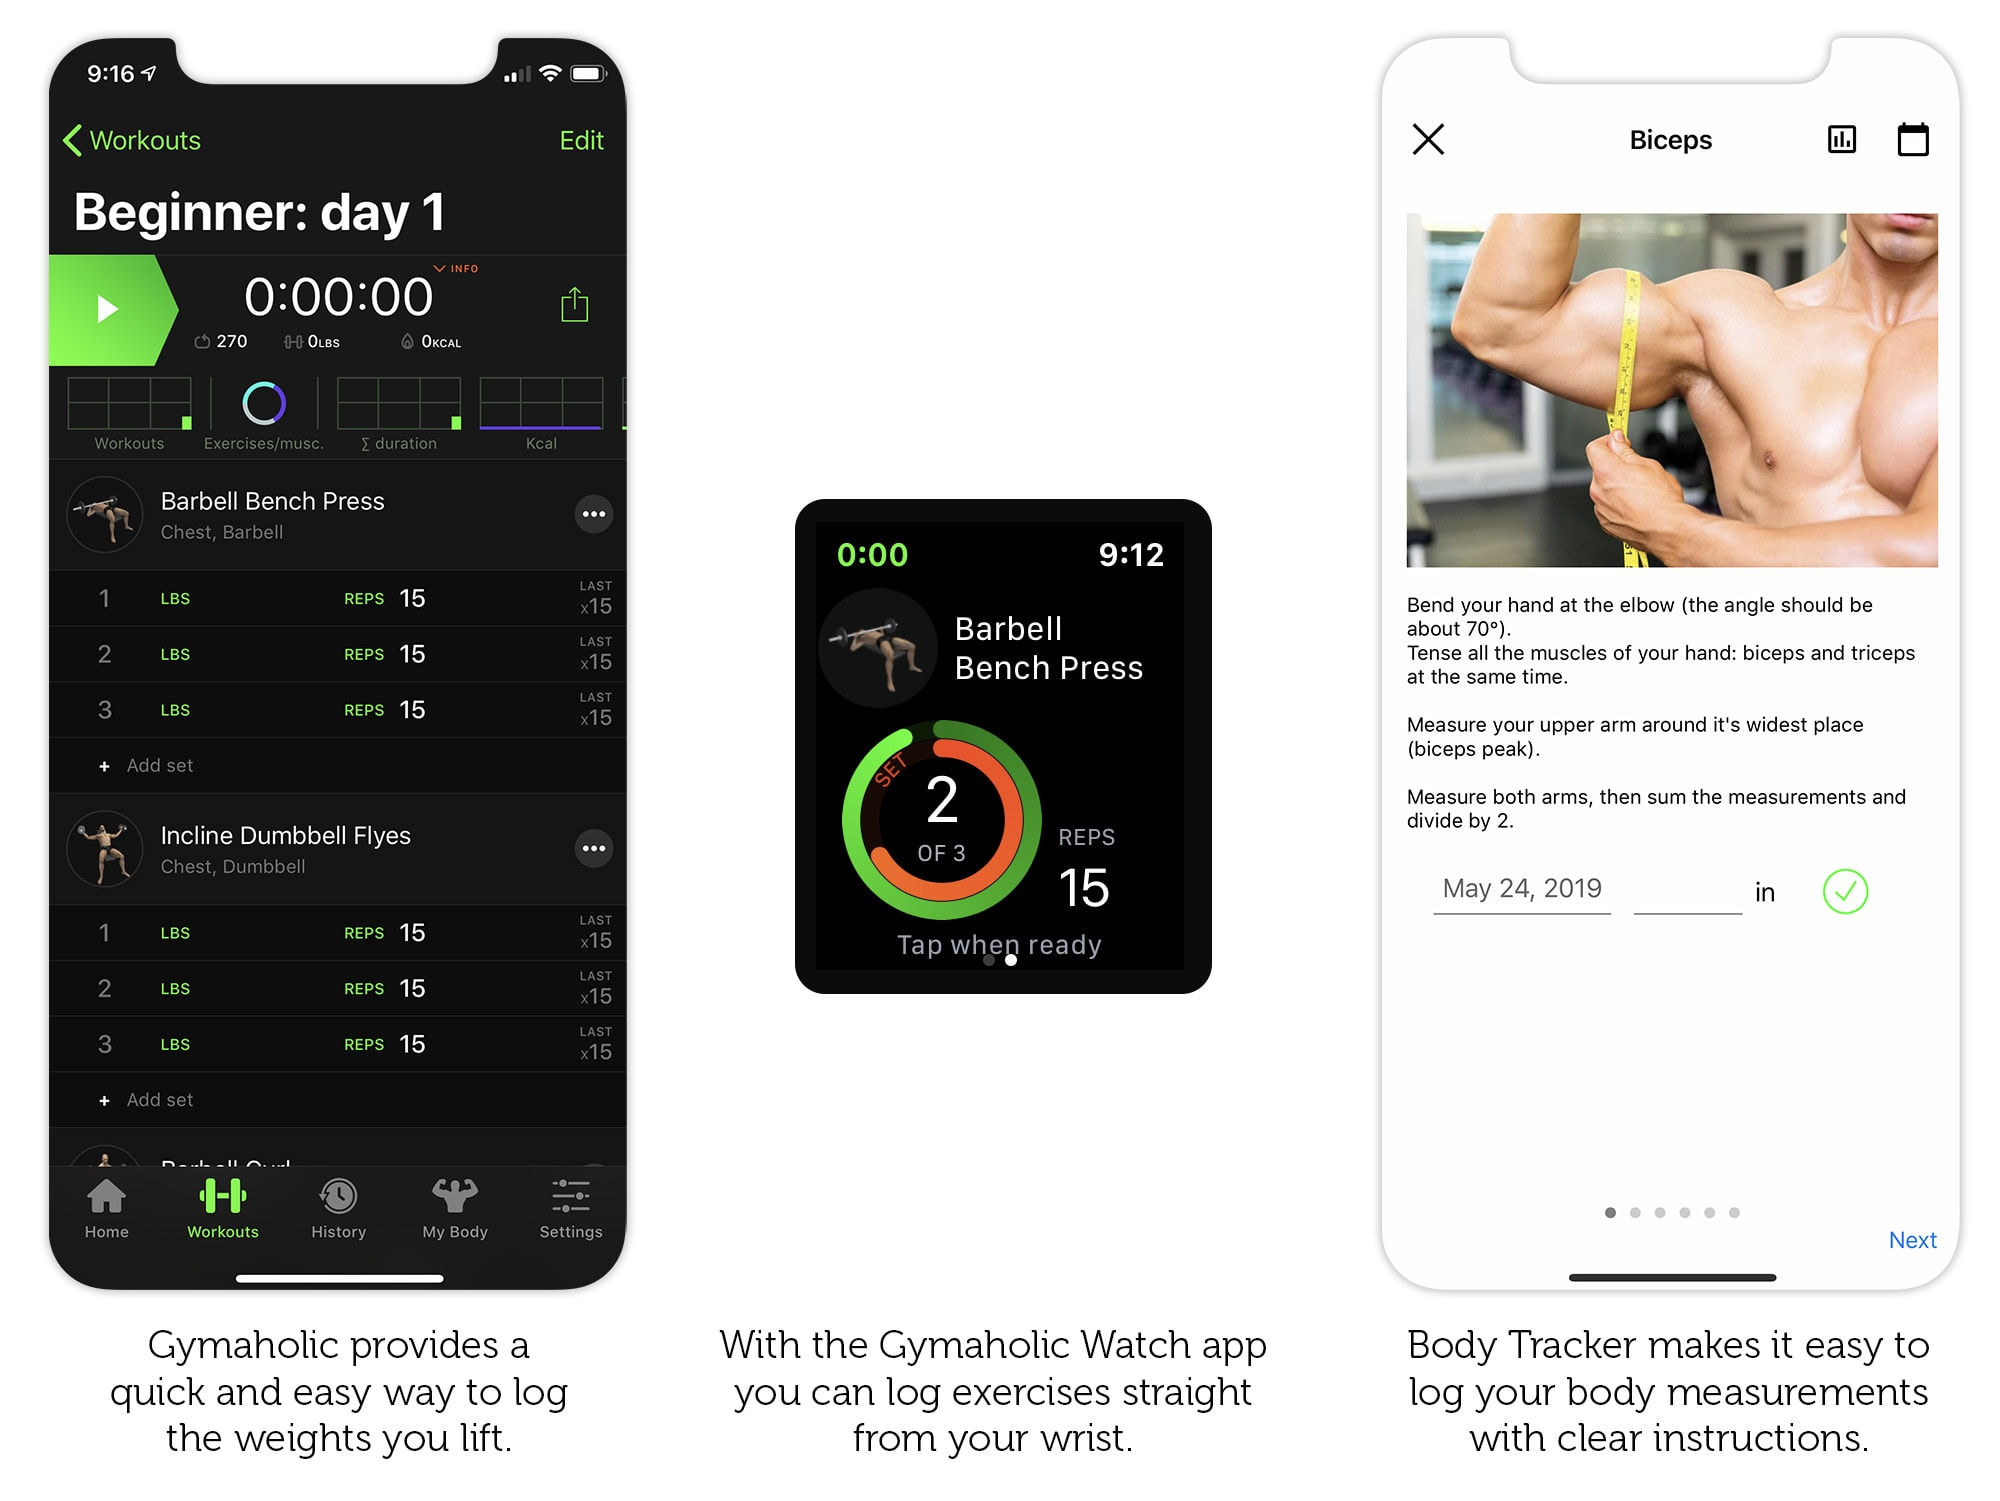 Log your progress with Gymaholic and Body Tracker